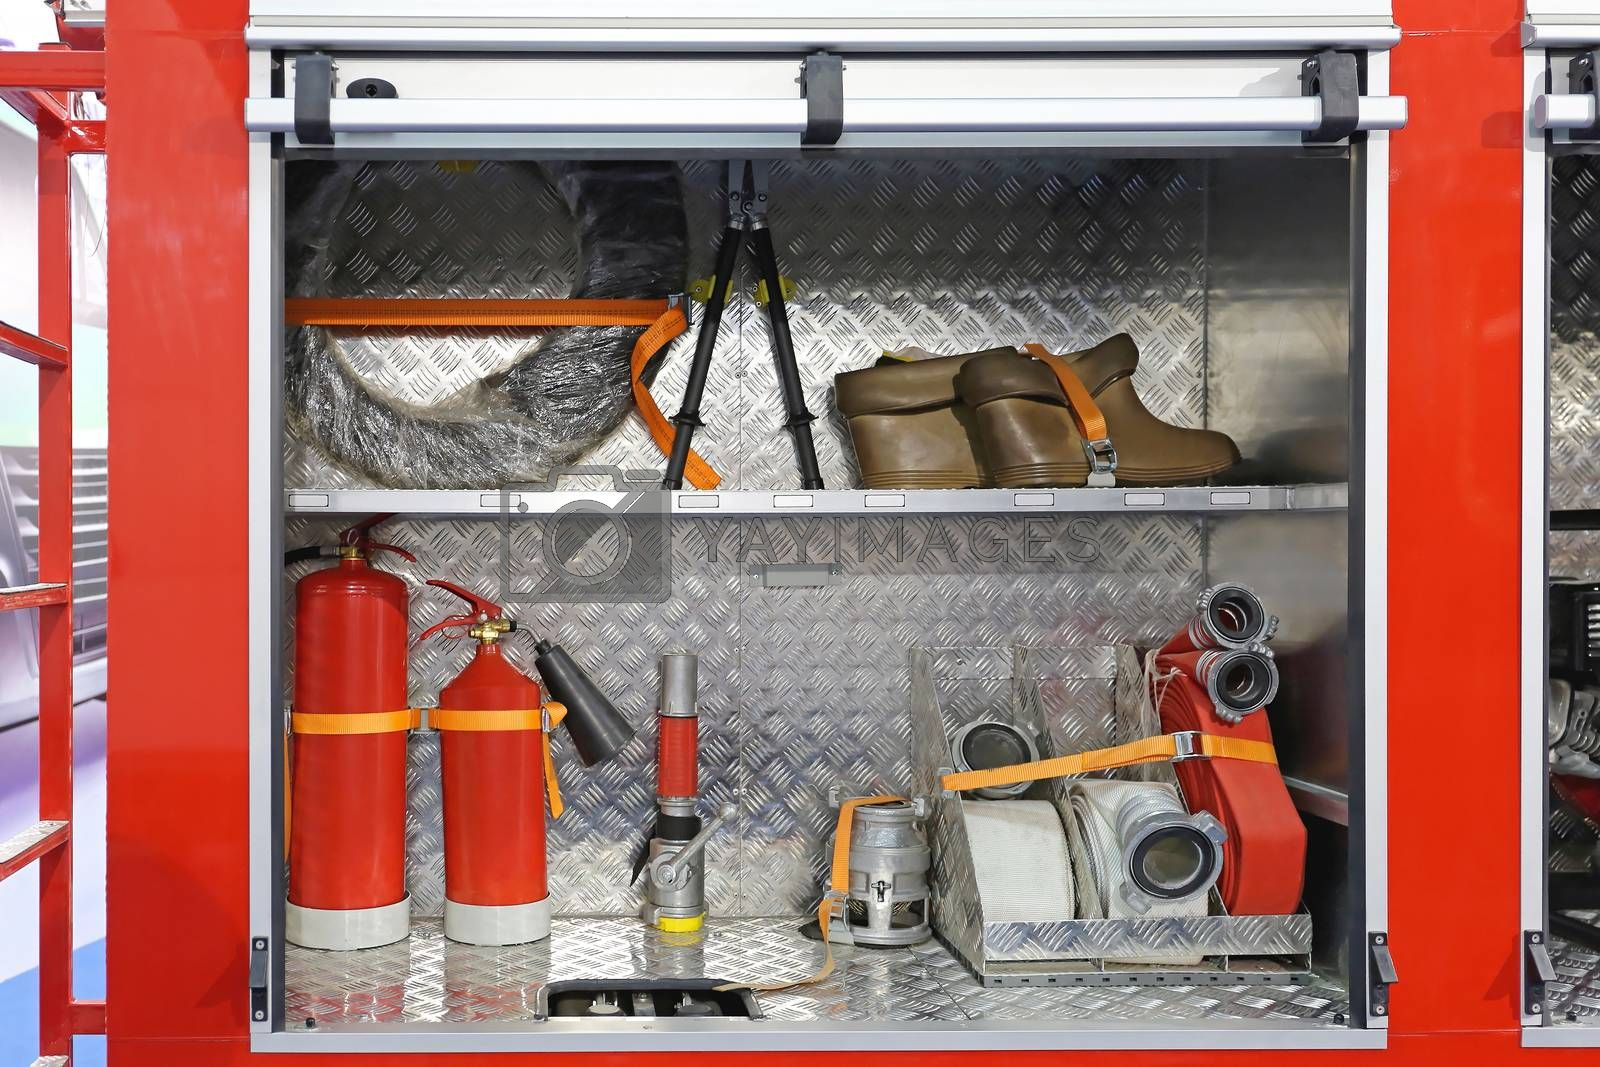 Equipment and Tools in Fire Engine Cabinets